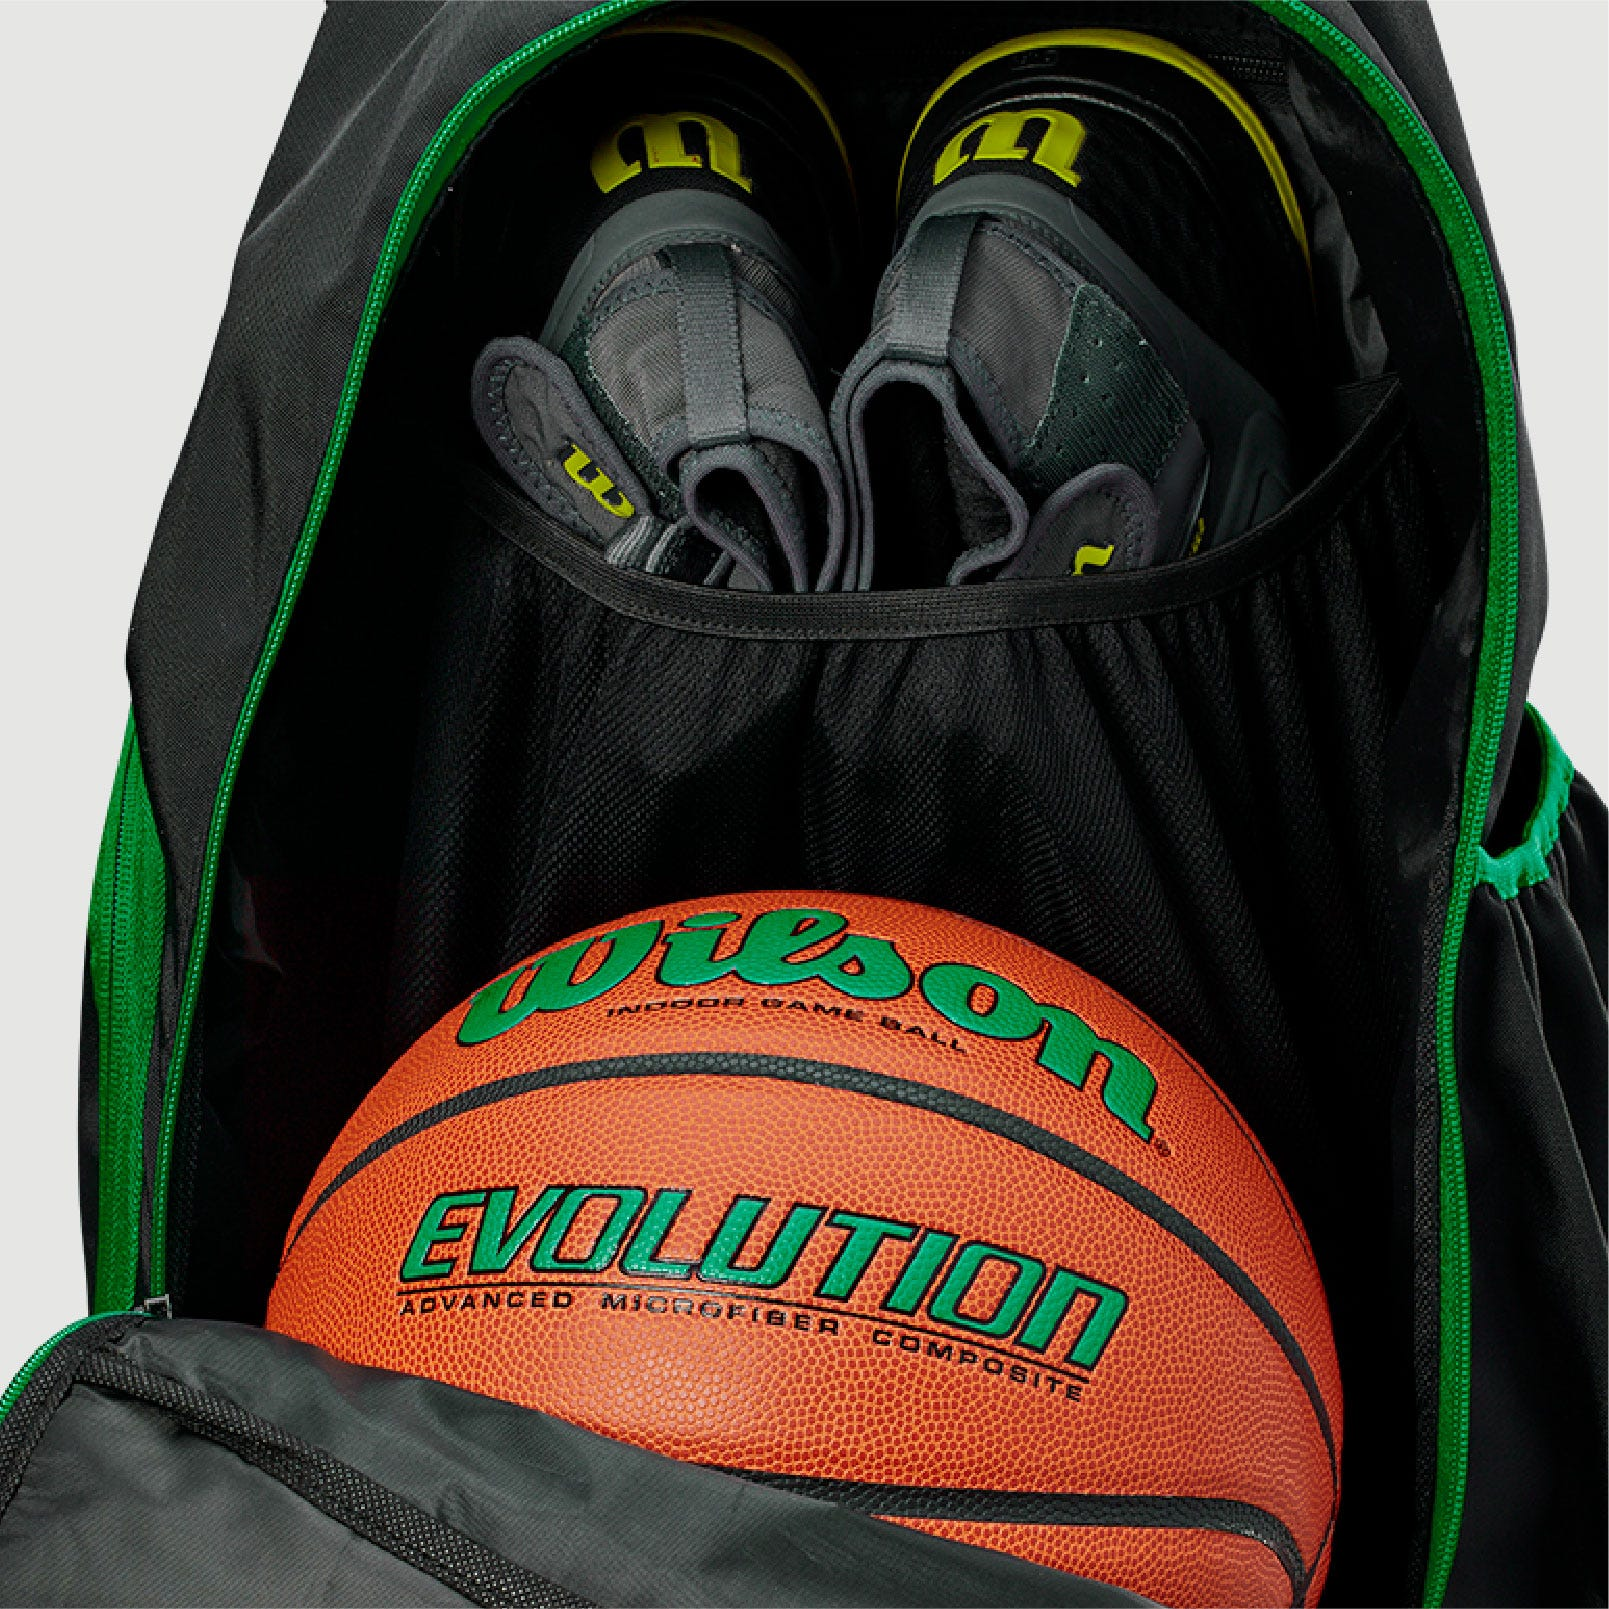 Evolution Backpack Main Compartment Open showing Ball